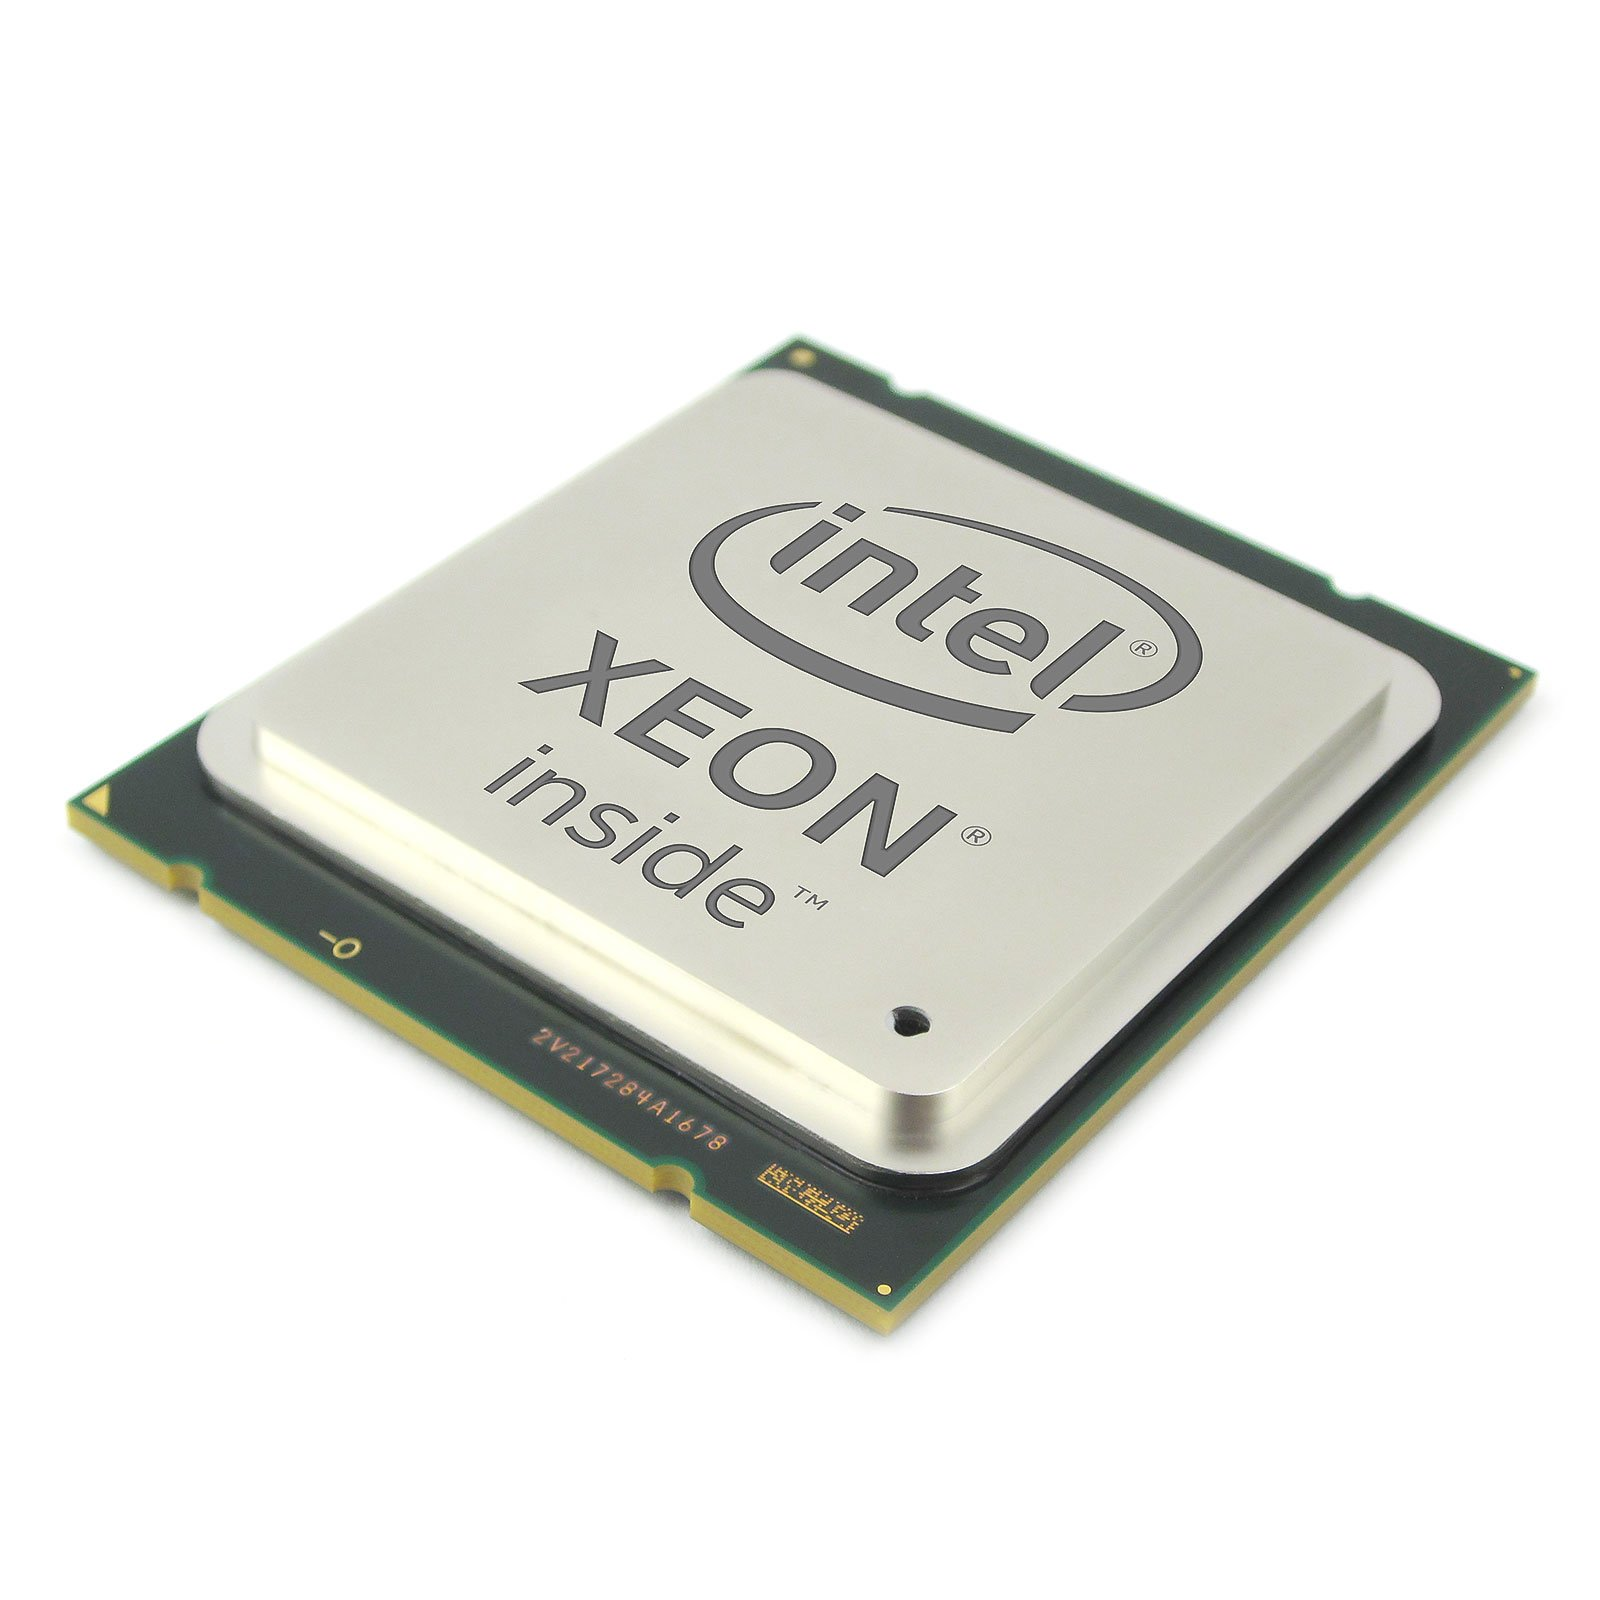 Intel Xeon E3110 Processor (3.00Ghz) (Certified Refurbished)